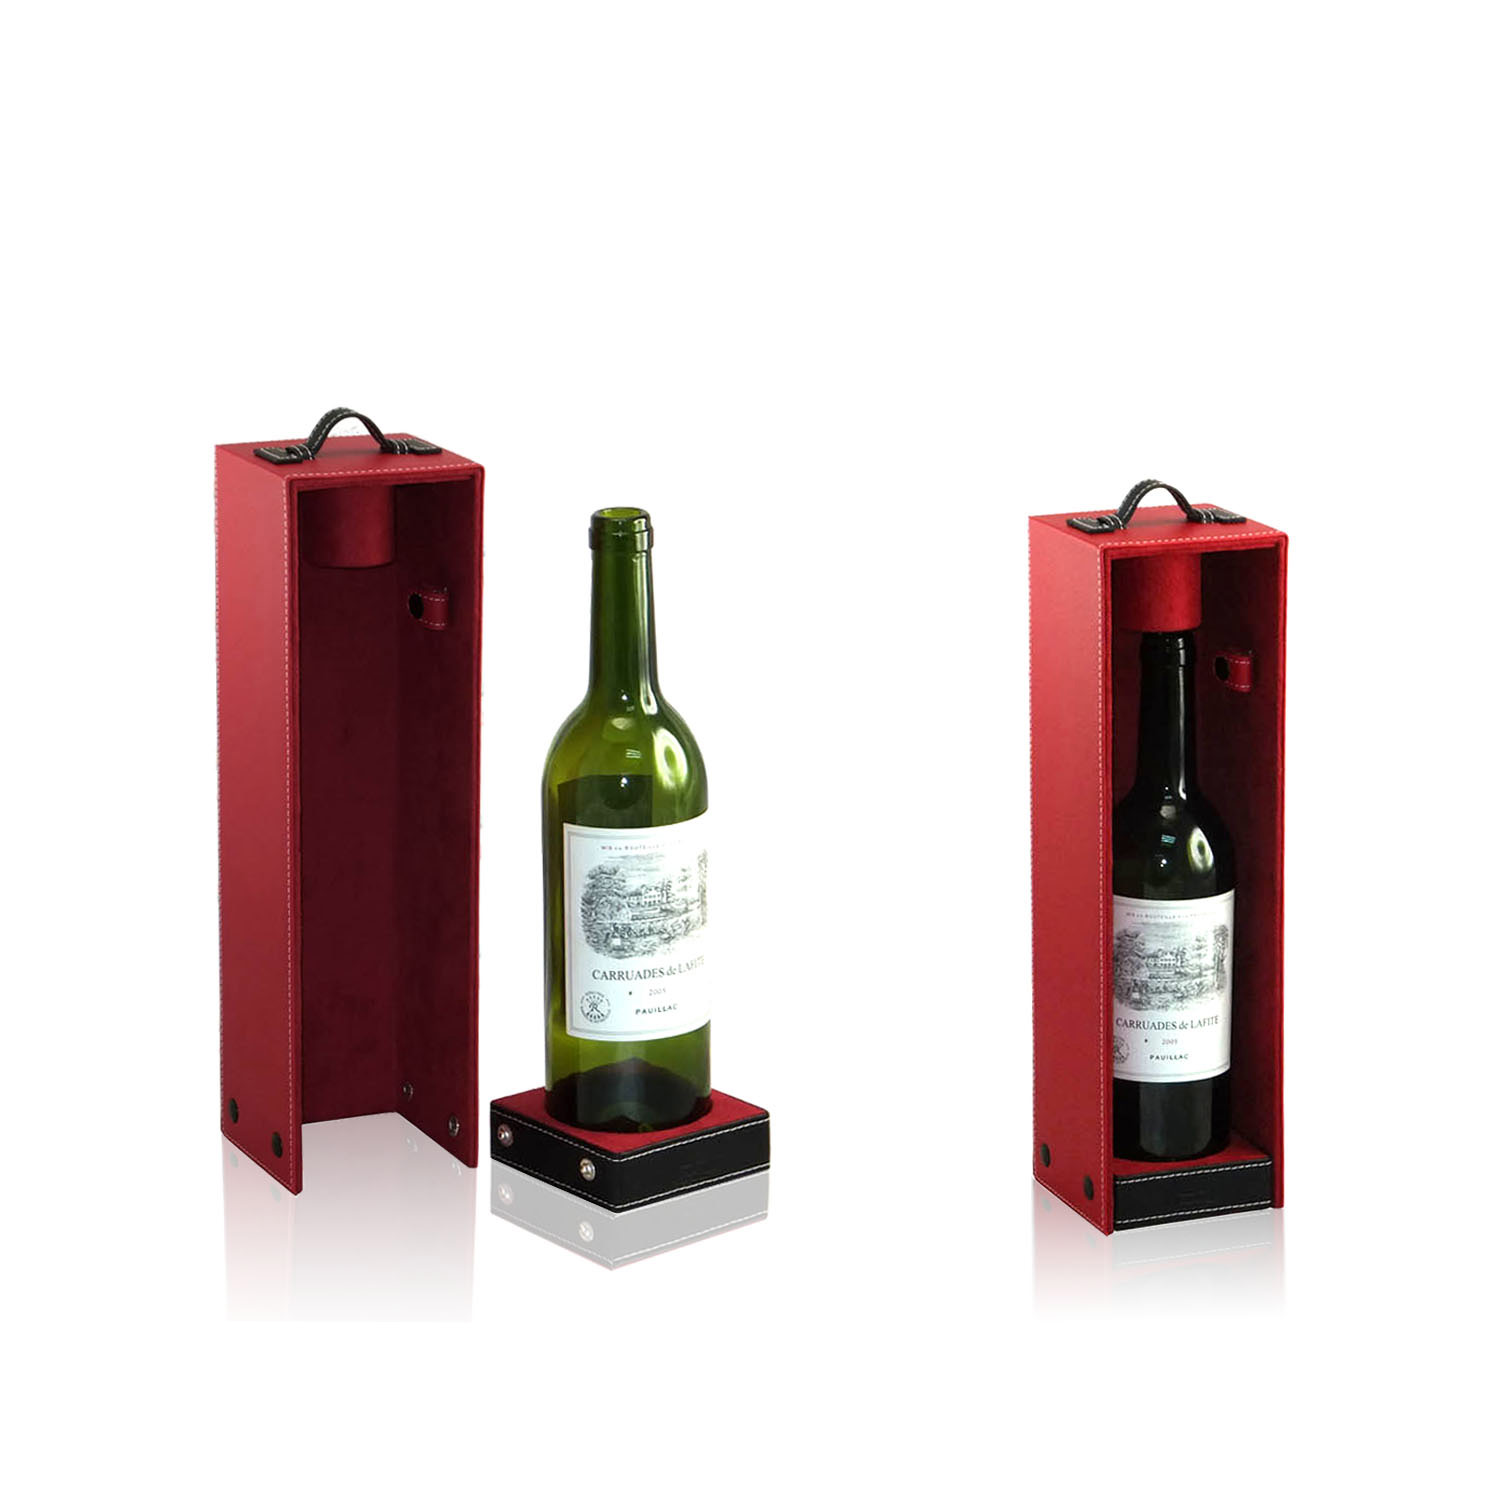 Wholesale cardboard wine suitcases /vintage wine suitcase produced for Blind Pig